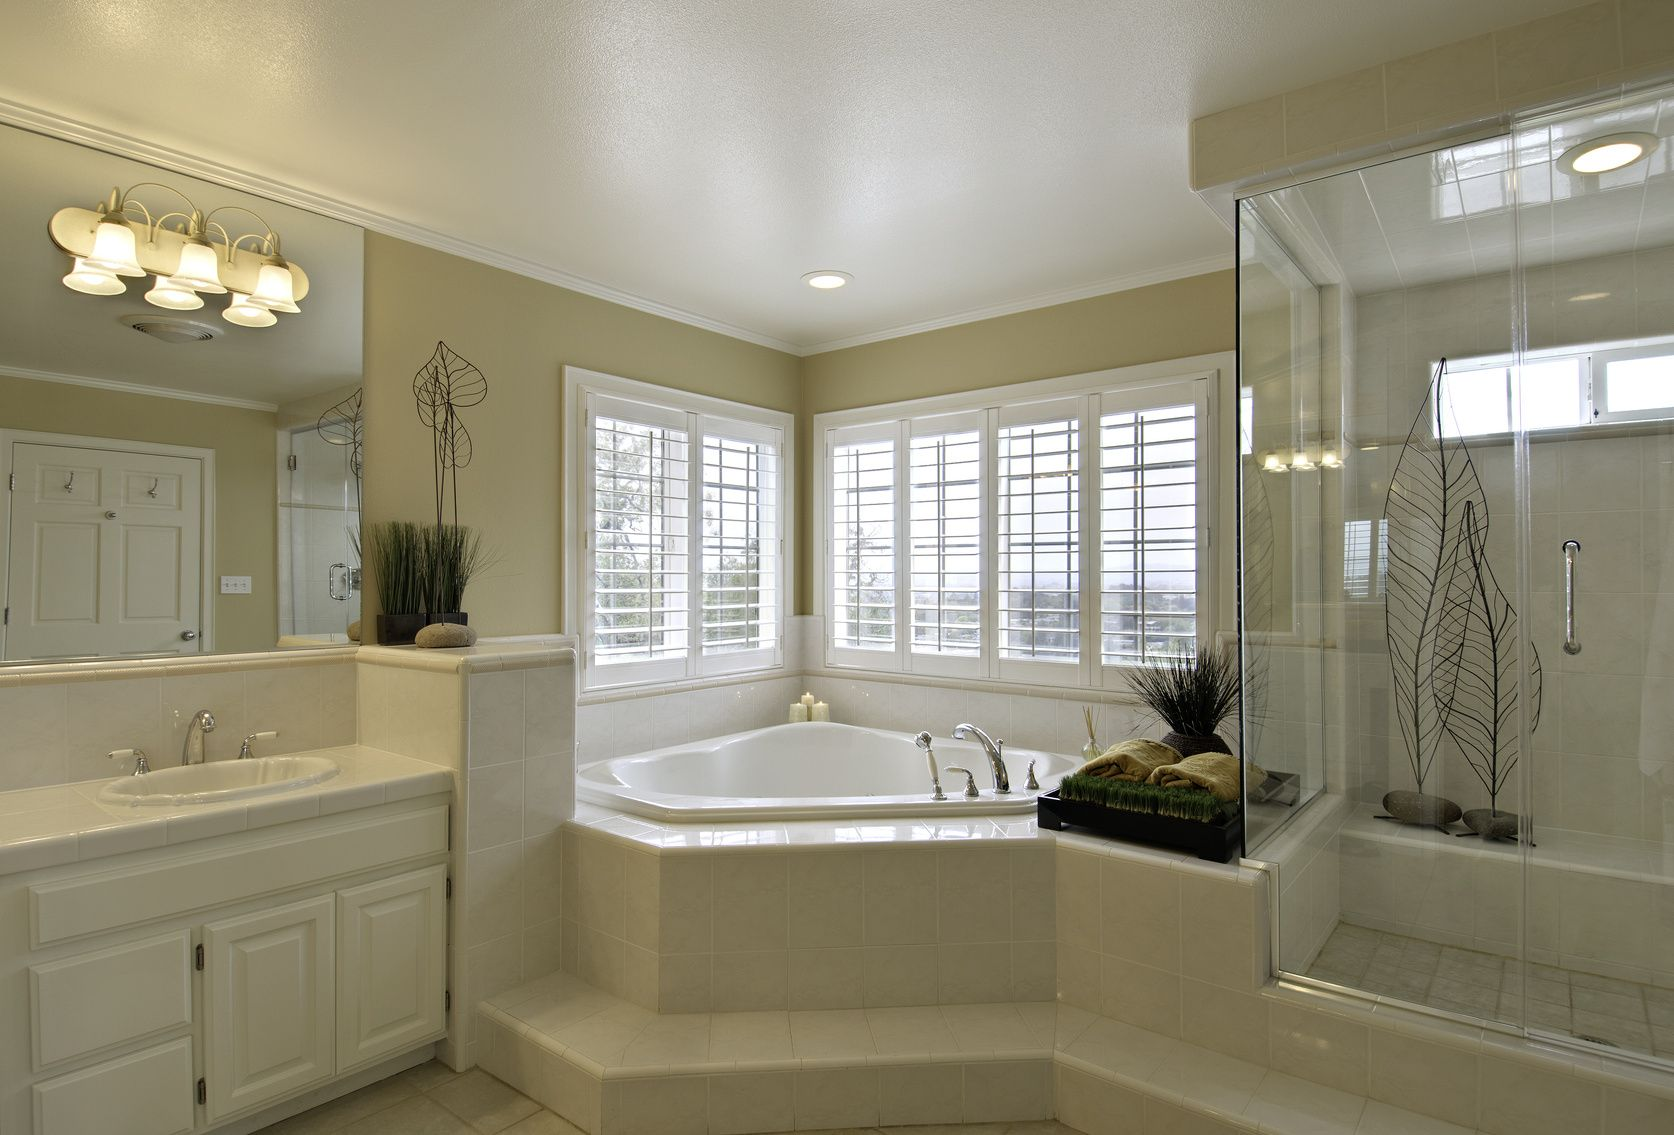 Bathroom Remodeling | Take advantage of these excellent bathroom ...